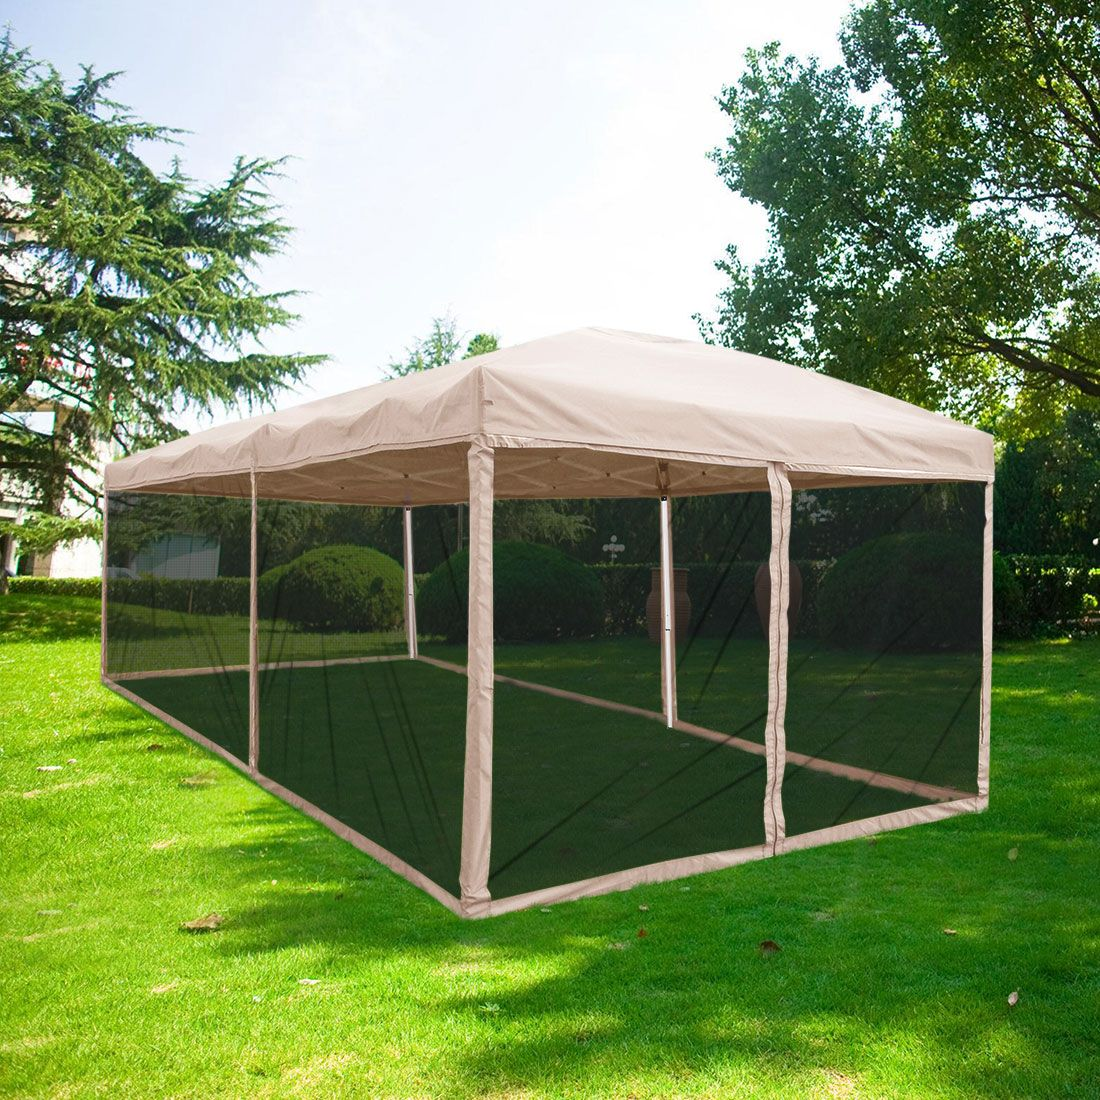 Free 2 Day Shipping Buy Quictent 10x20 Ez Tan Pop Up Canopy With Netting Gazebo Mesh Side Wall Roller Bag Included Tan Gazebo Screen House Pop Up Canopy Tent